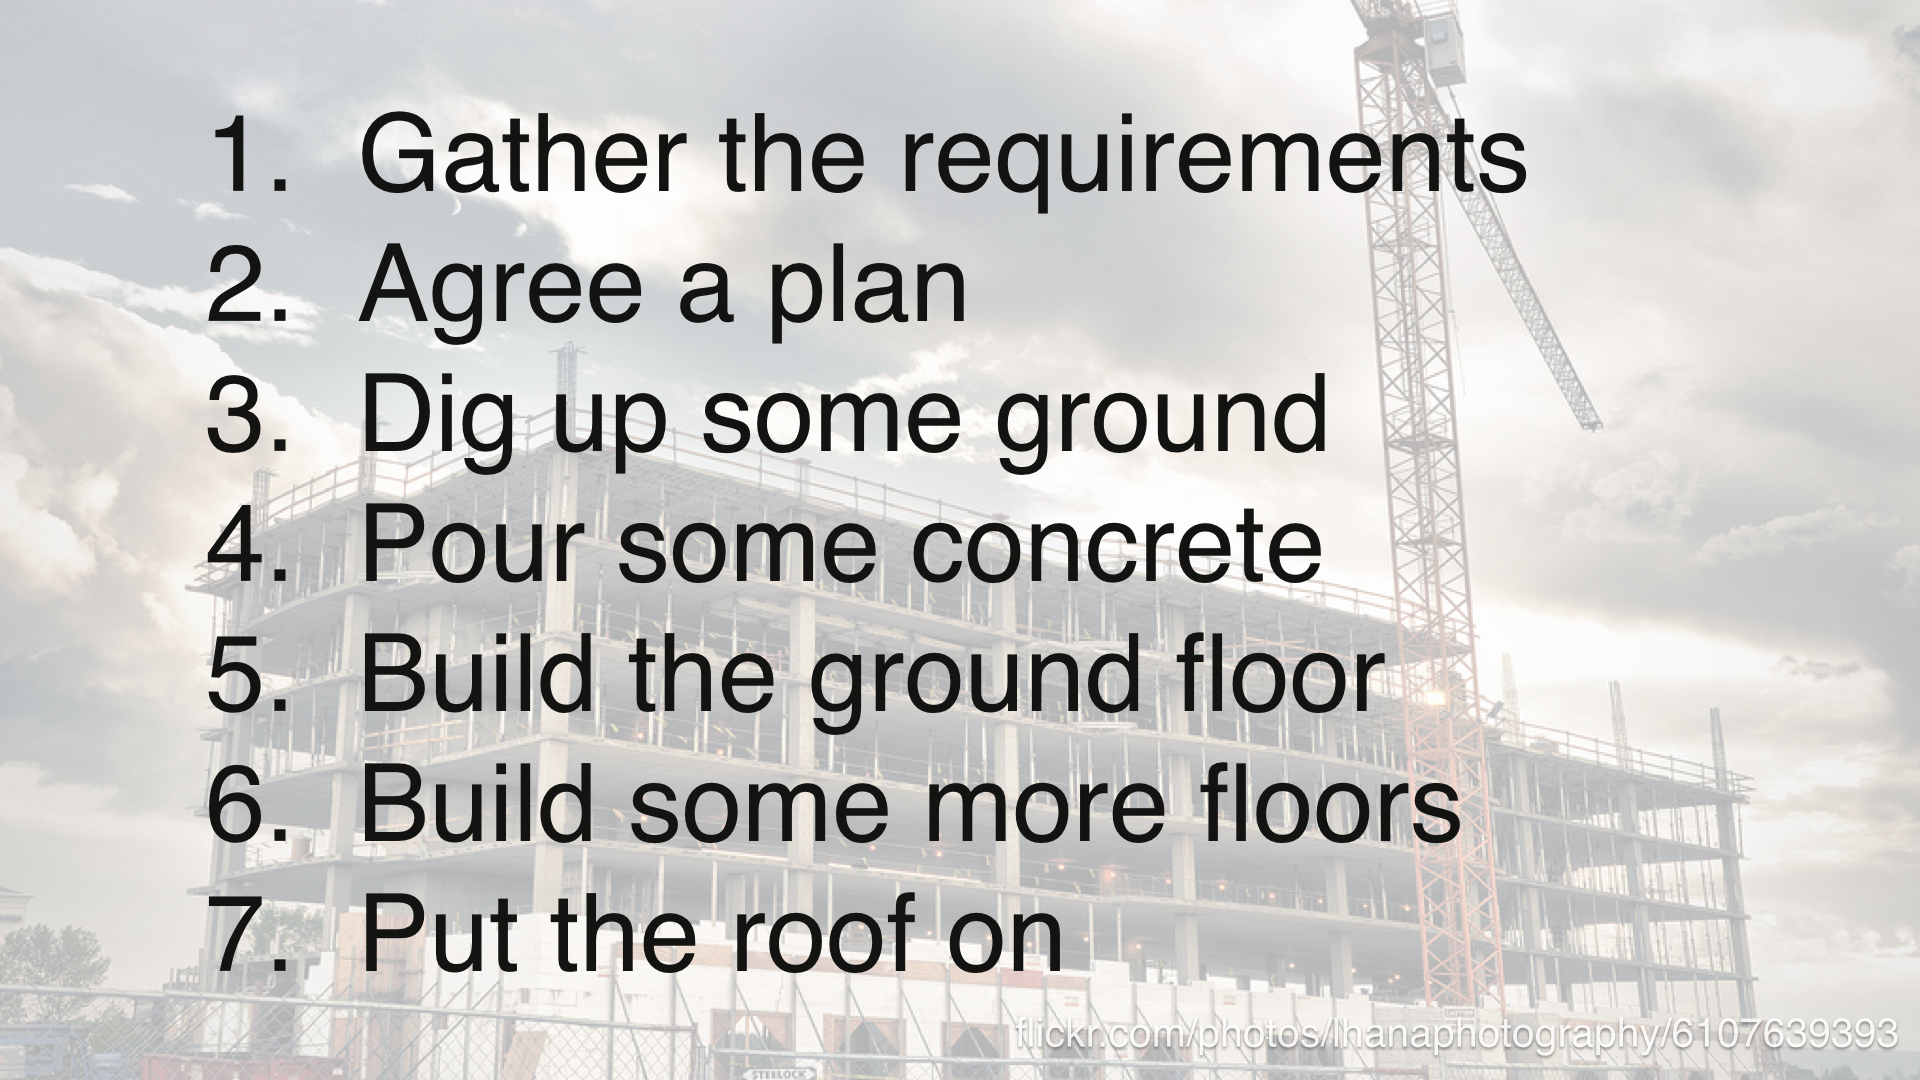 1. gather the requirements. 2. agree a plan. 3. dig up some ground. 4. pour some concrete. 5. build the ground floor. 6. build some more floors. 7. put the roof on